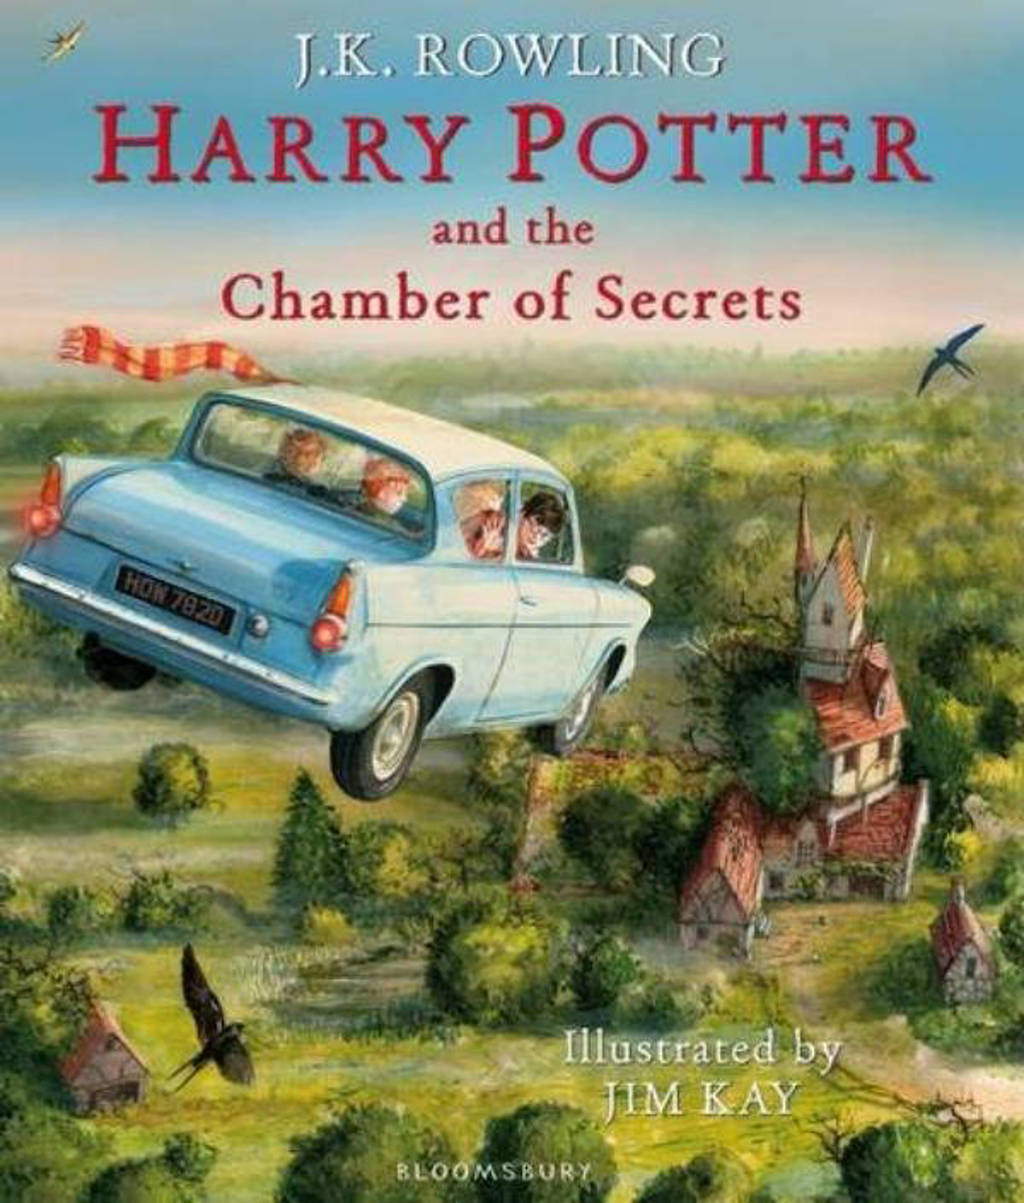 Harry Potter and the Chamber of Secrets - Illustrated Edition - Rowling, J.K.